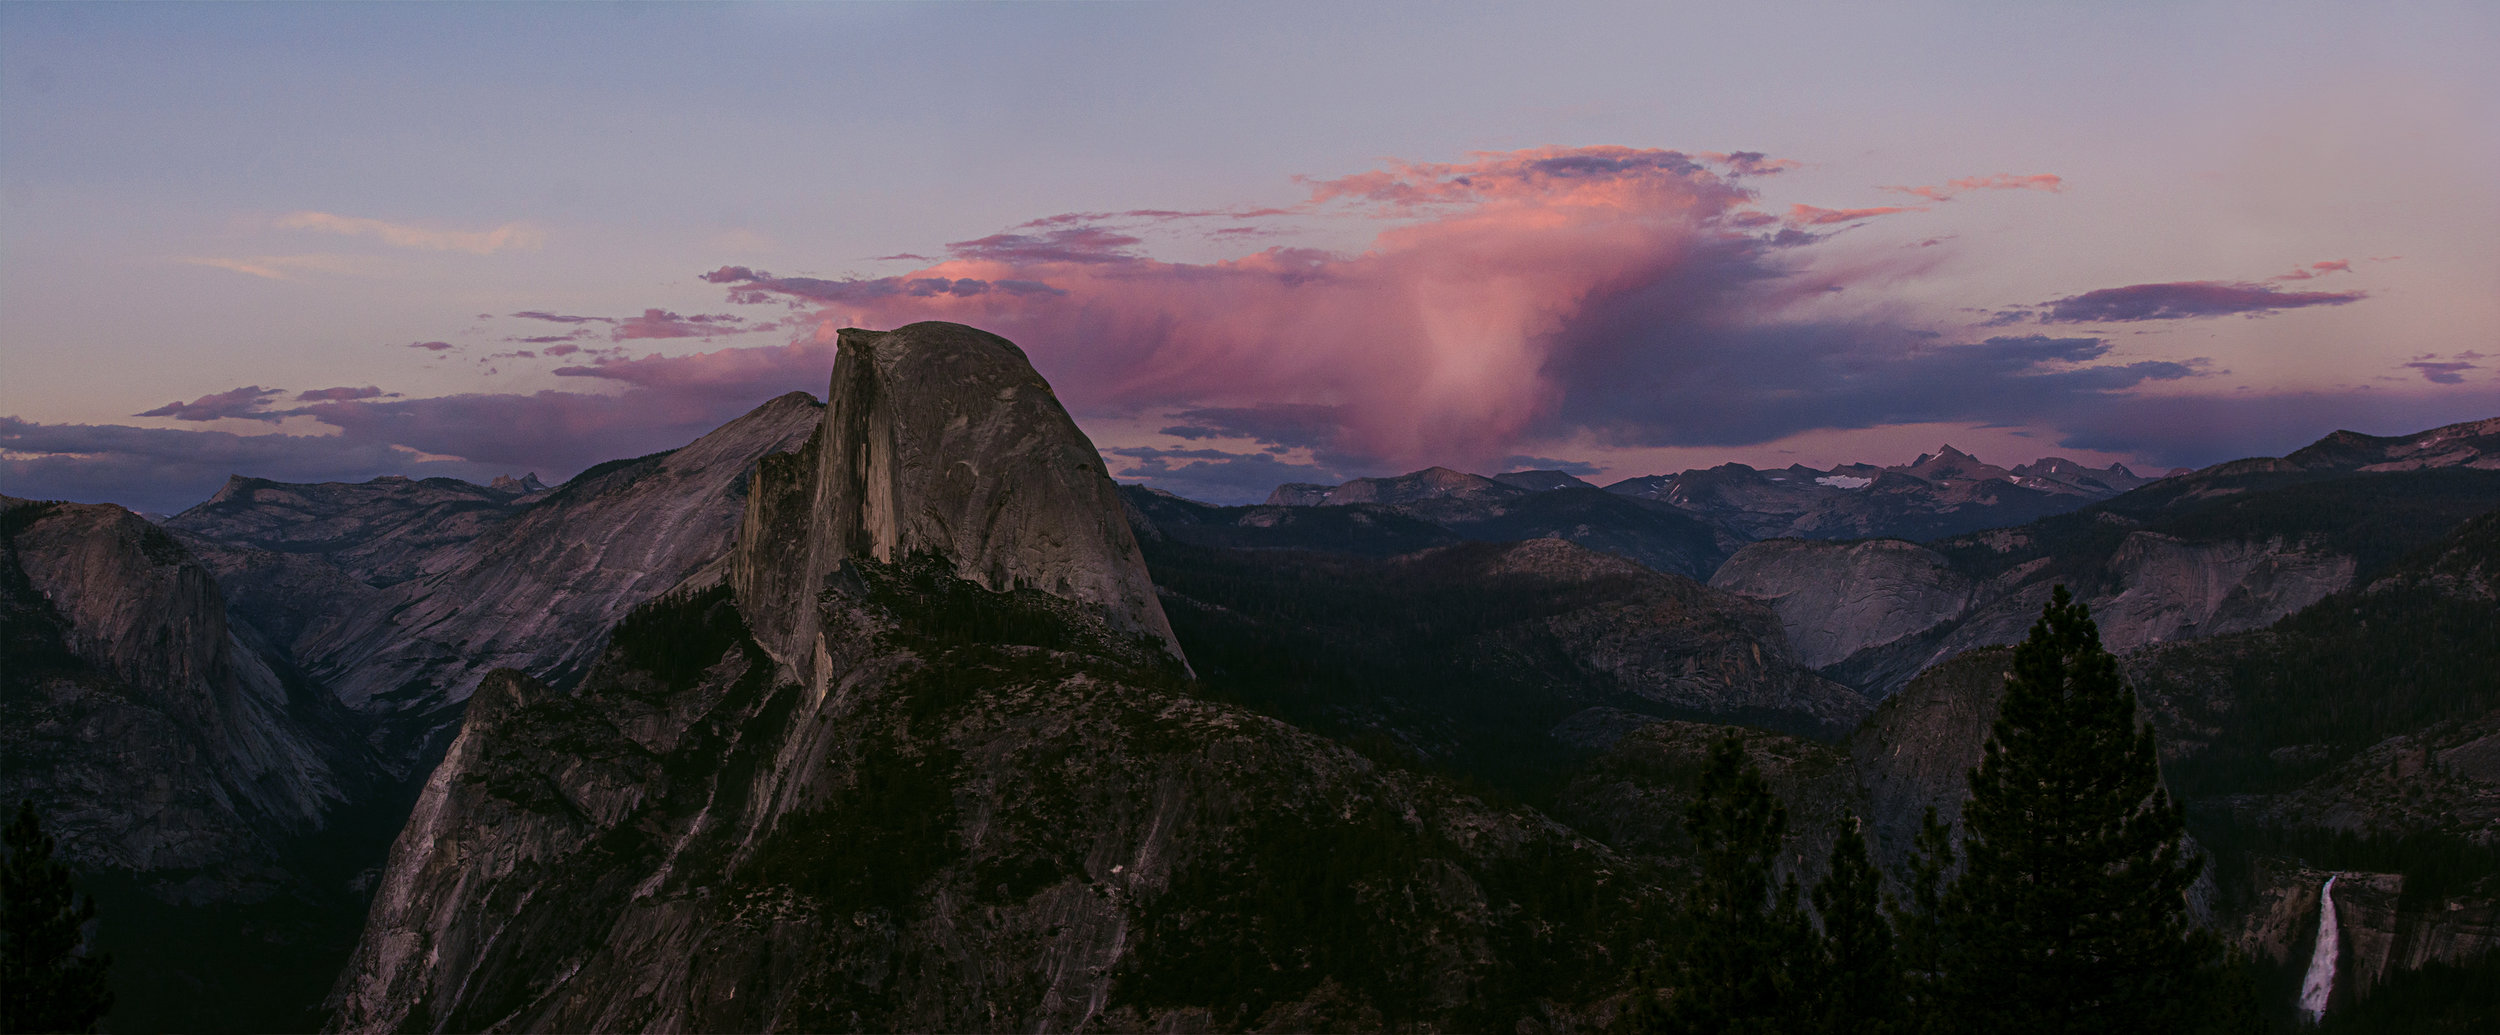 A pano from my trip to Yosemite in the summer of 2017 created from several photos that I stitched together to end up with the full view.